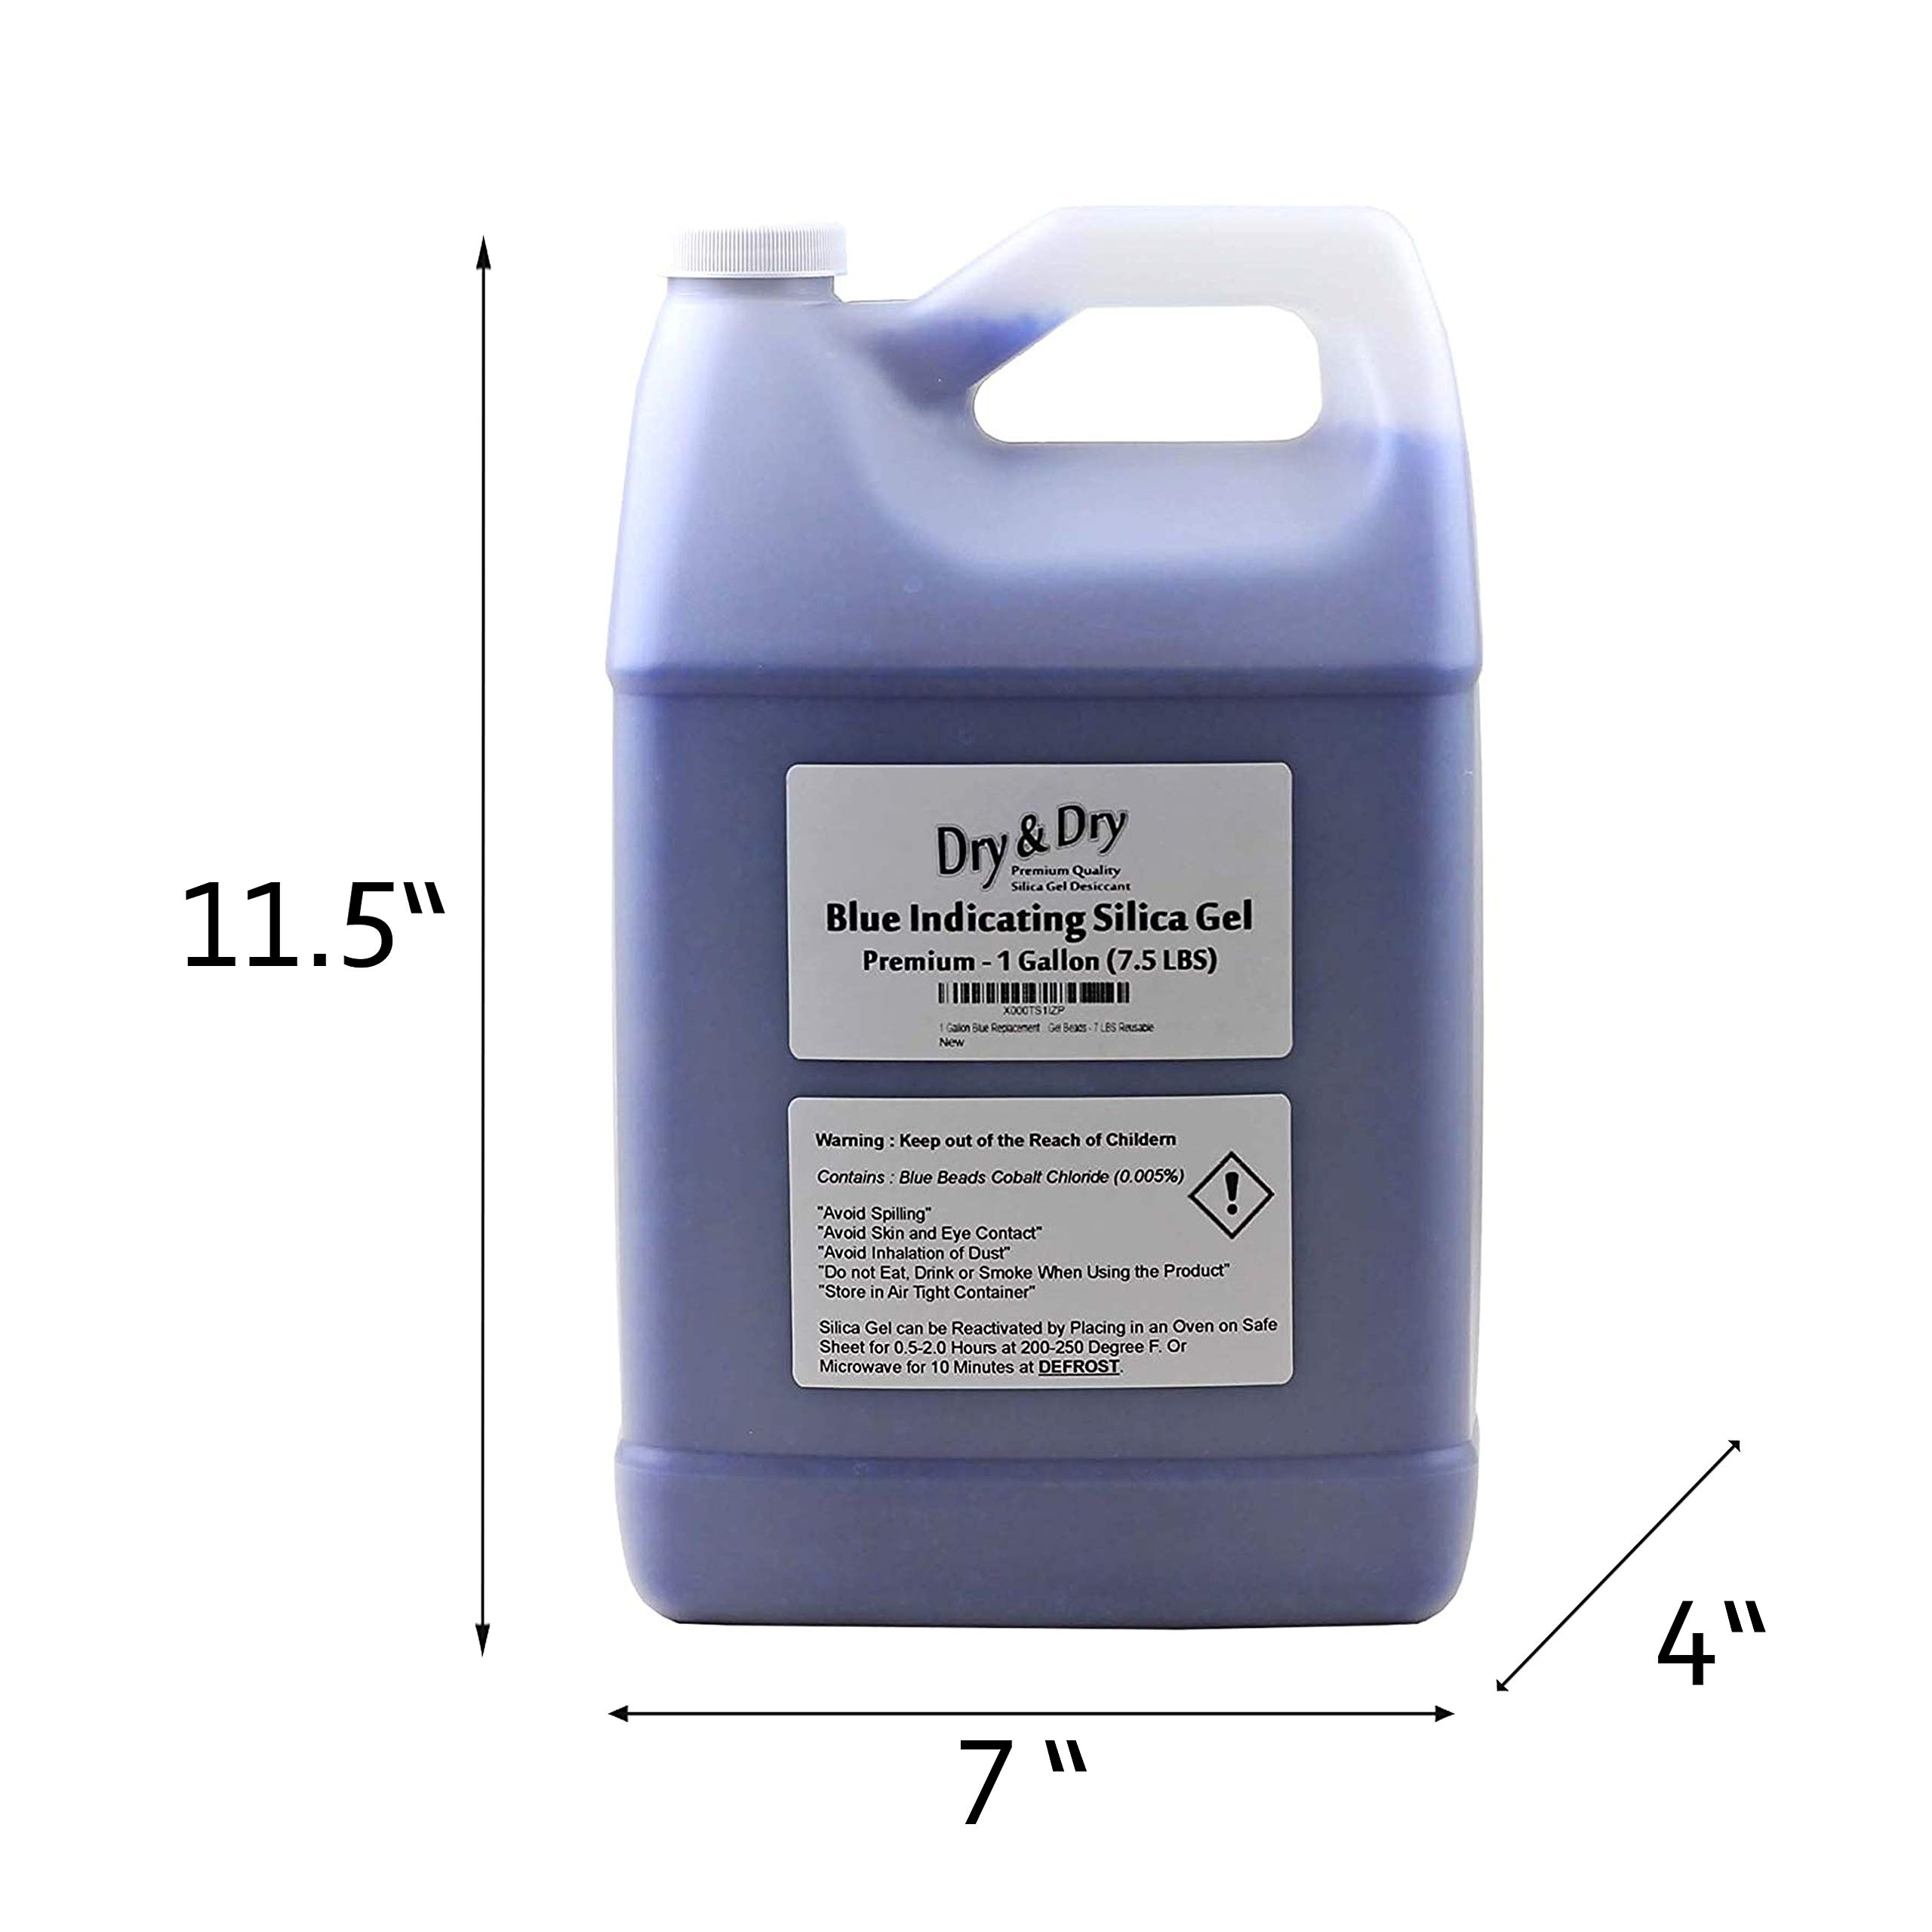 Dry & Dry 2 Gallon Blue Premium Desiccant Indicating Silica Gel Beads(Industry Standard 2-4 mm) - 15 LBS Reusable by Dry & Dry (Image #6)